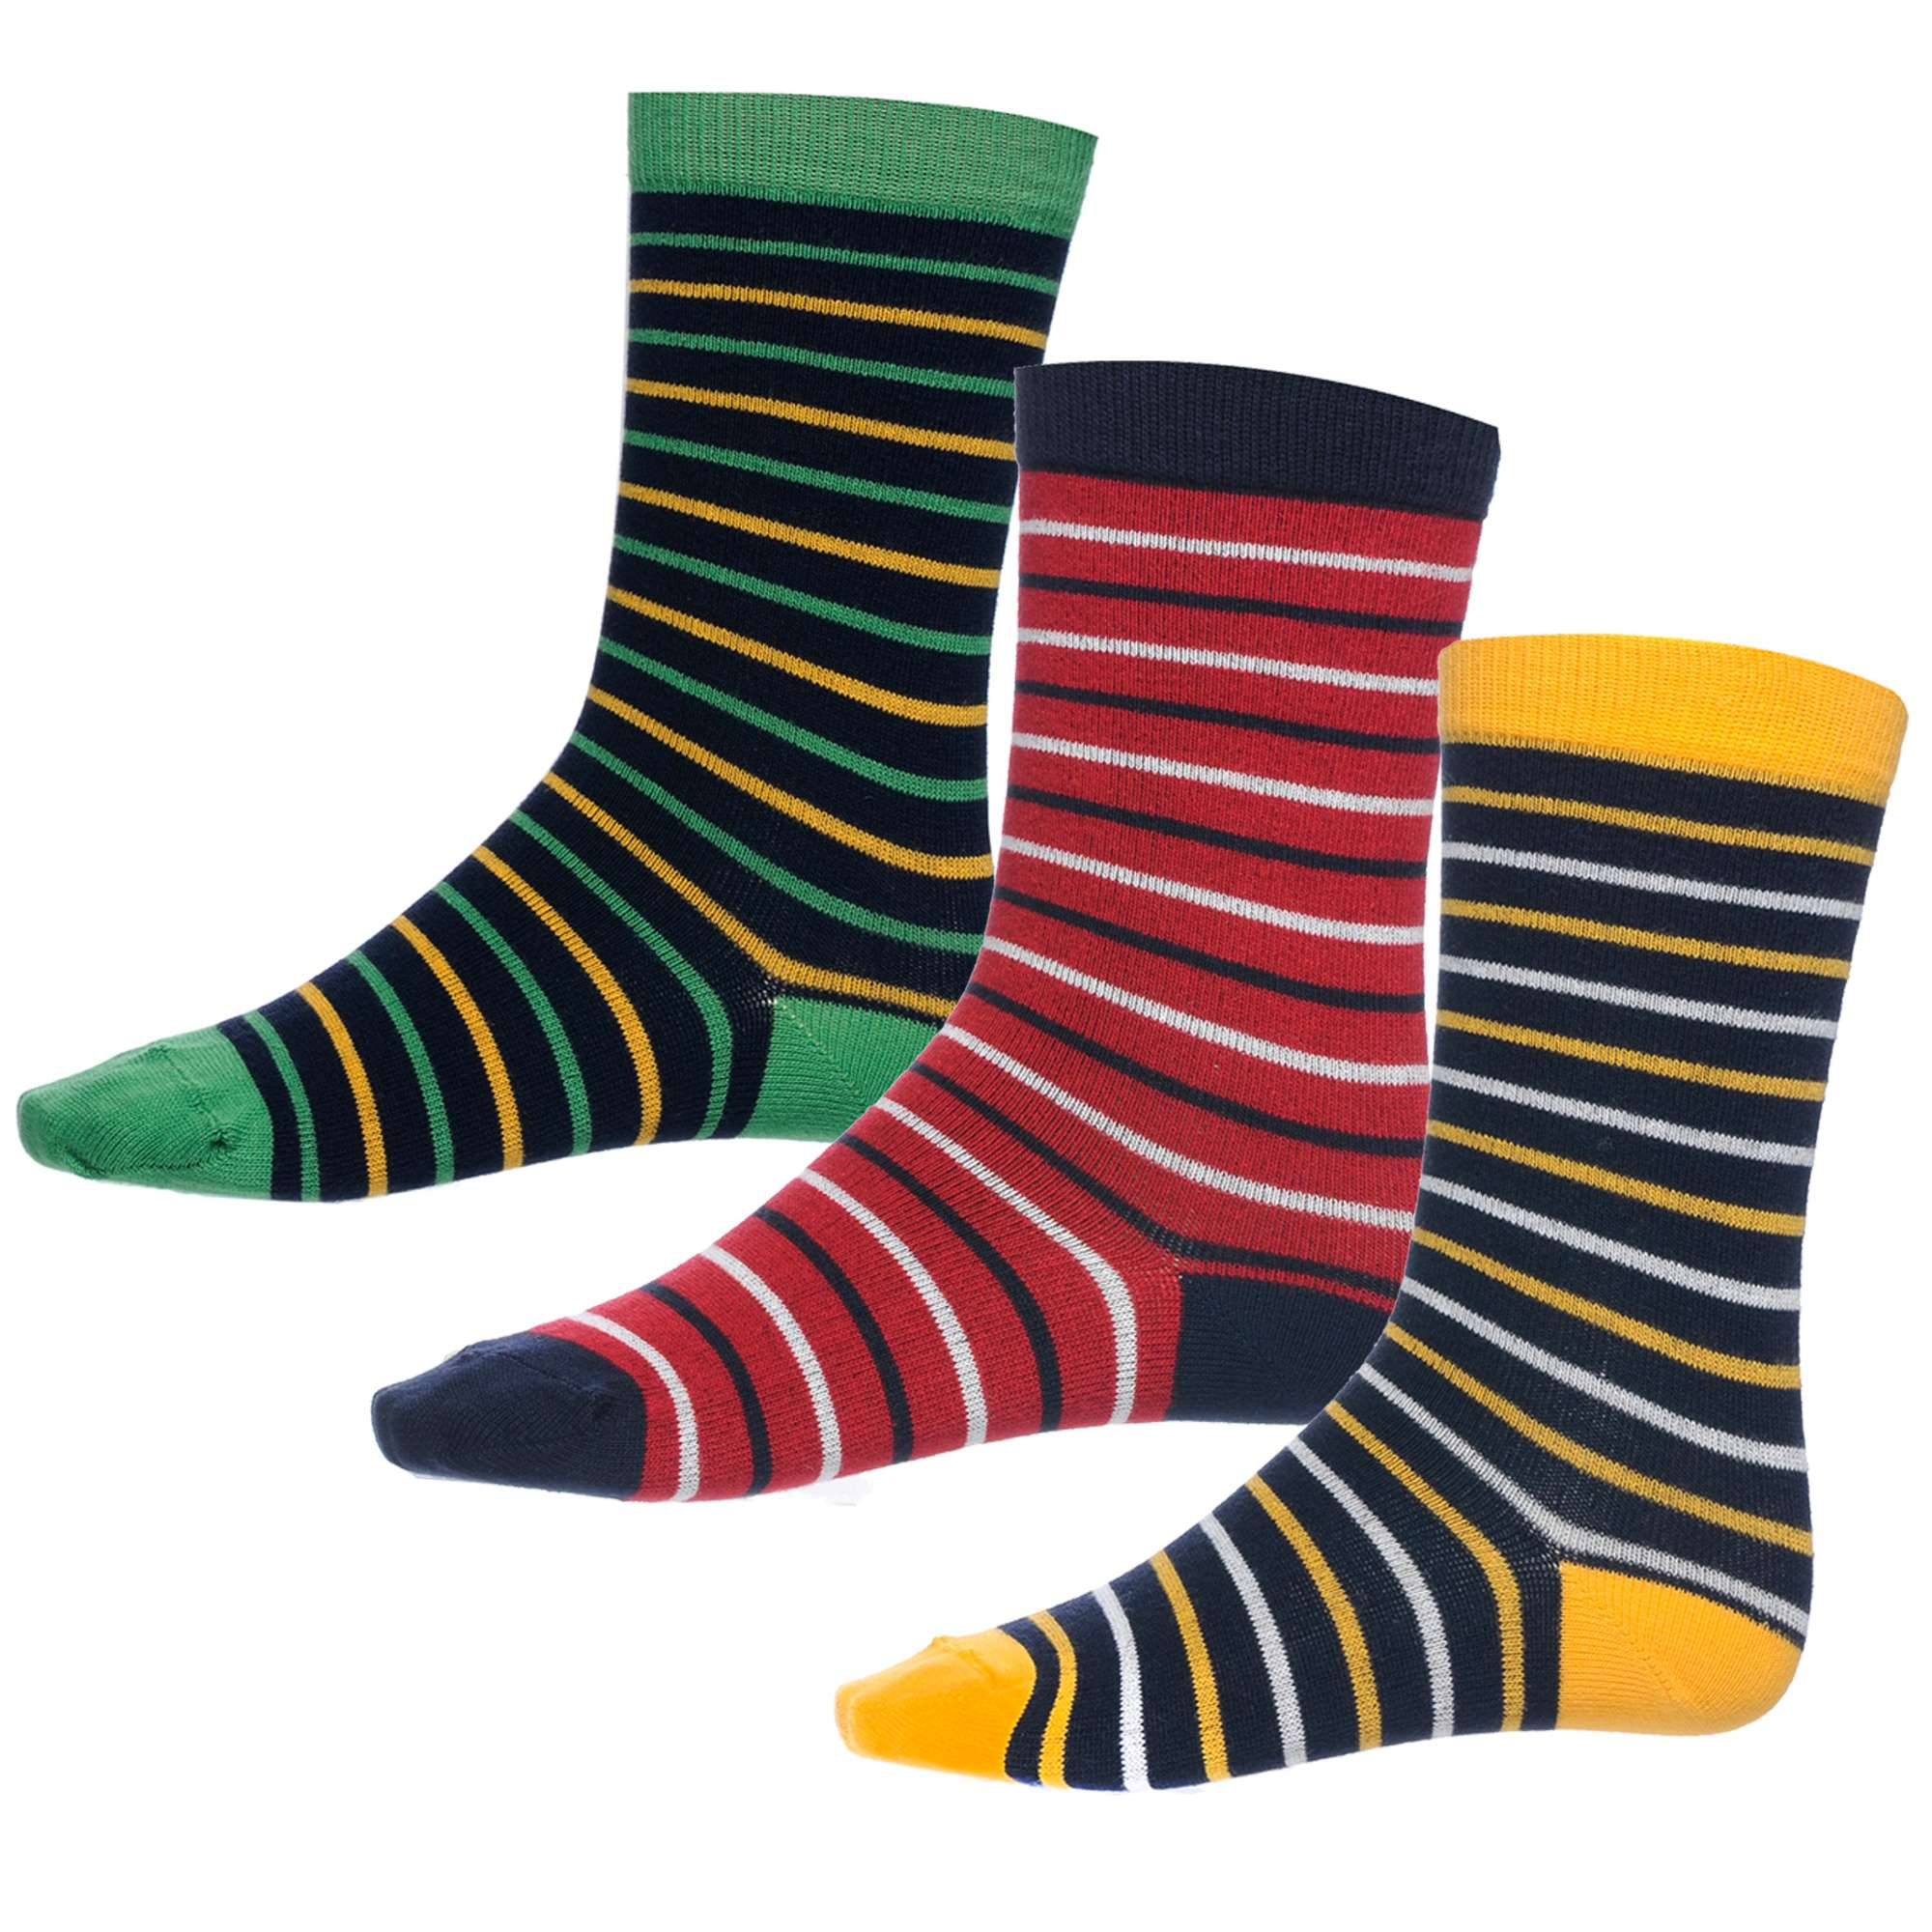 PETER STORM Boys' 3 Pack Socks